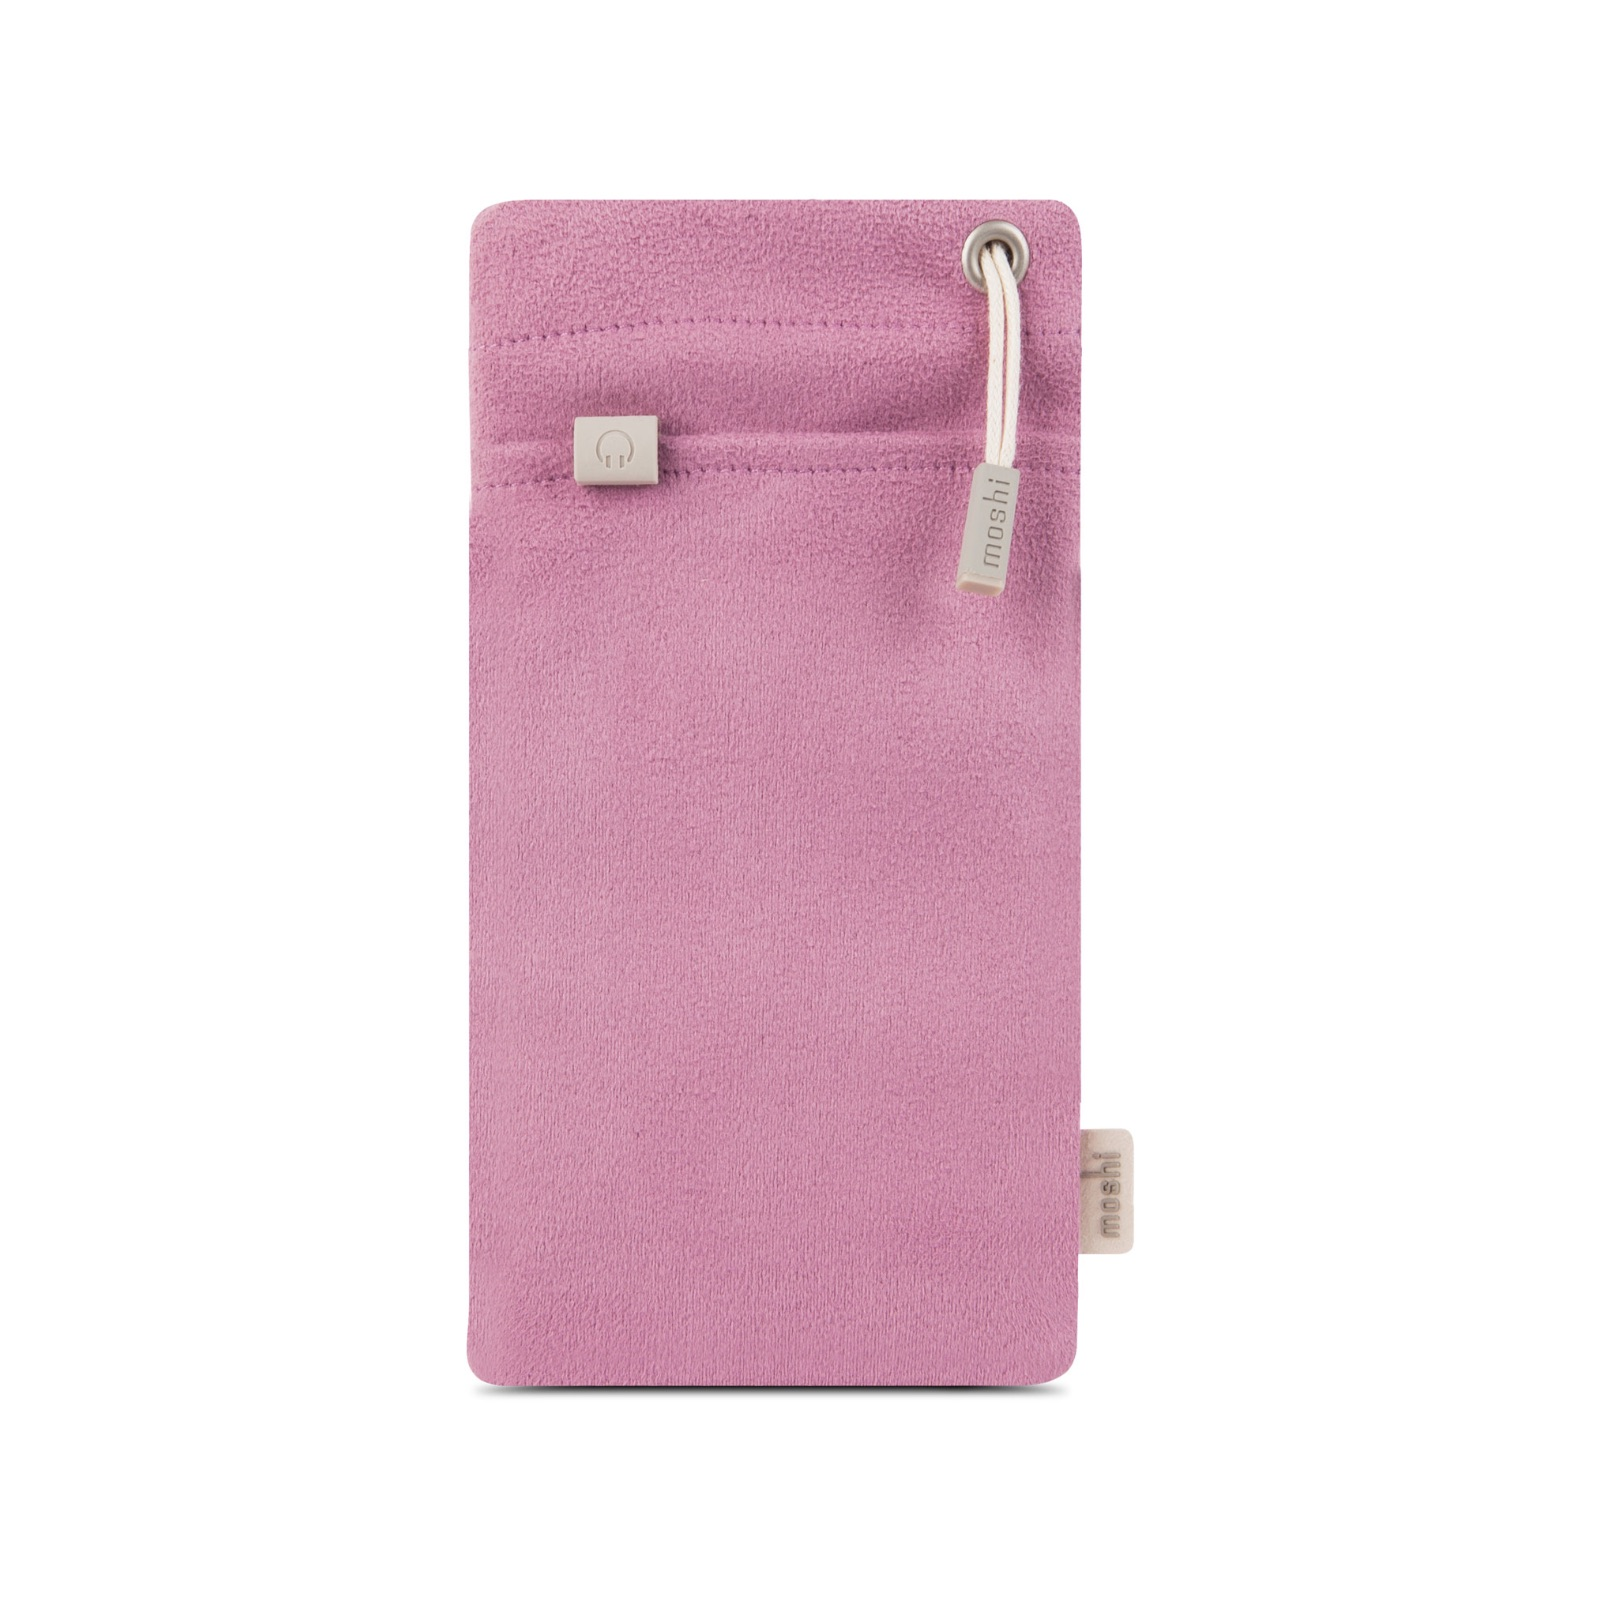 iPouch Plus Microfiber Carrying Case-image